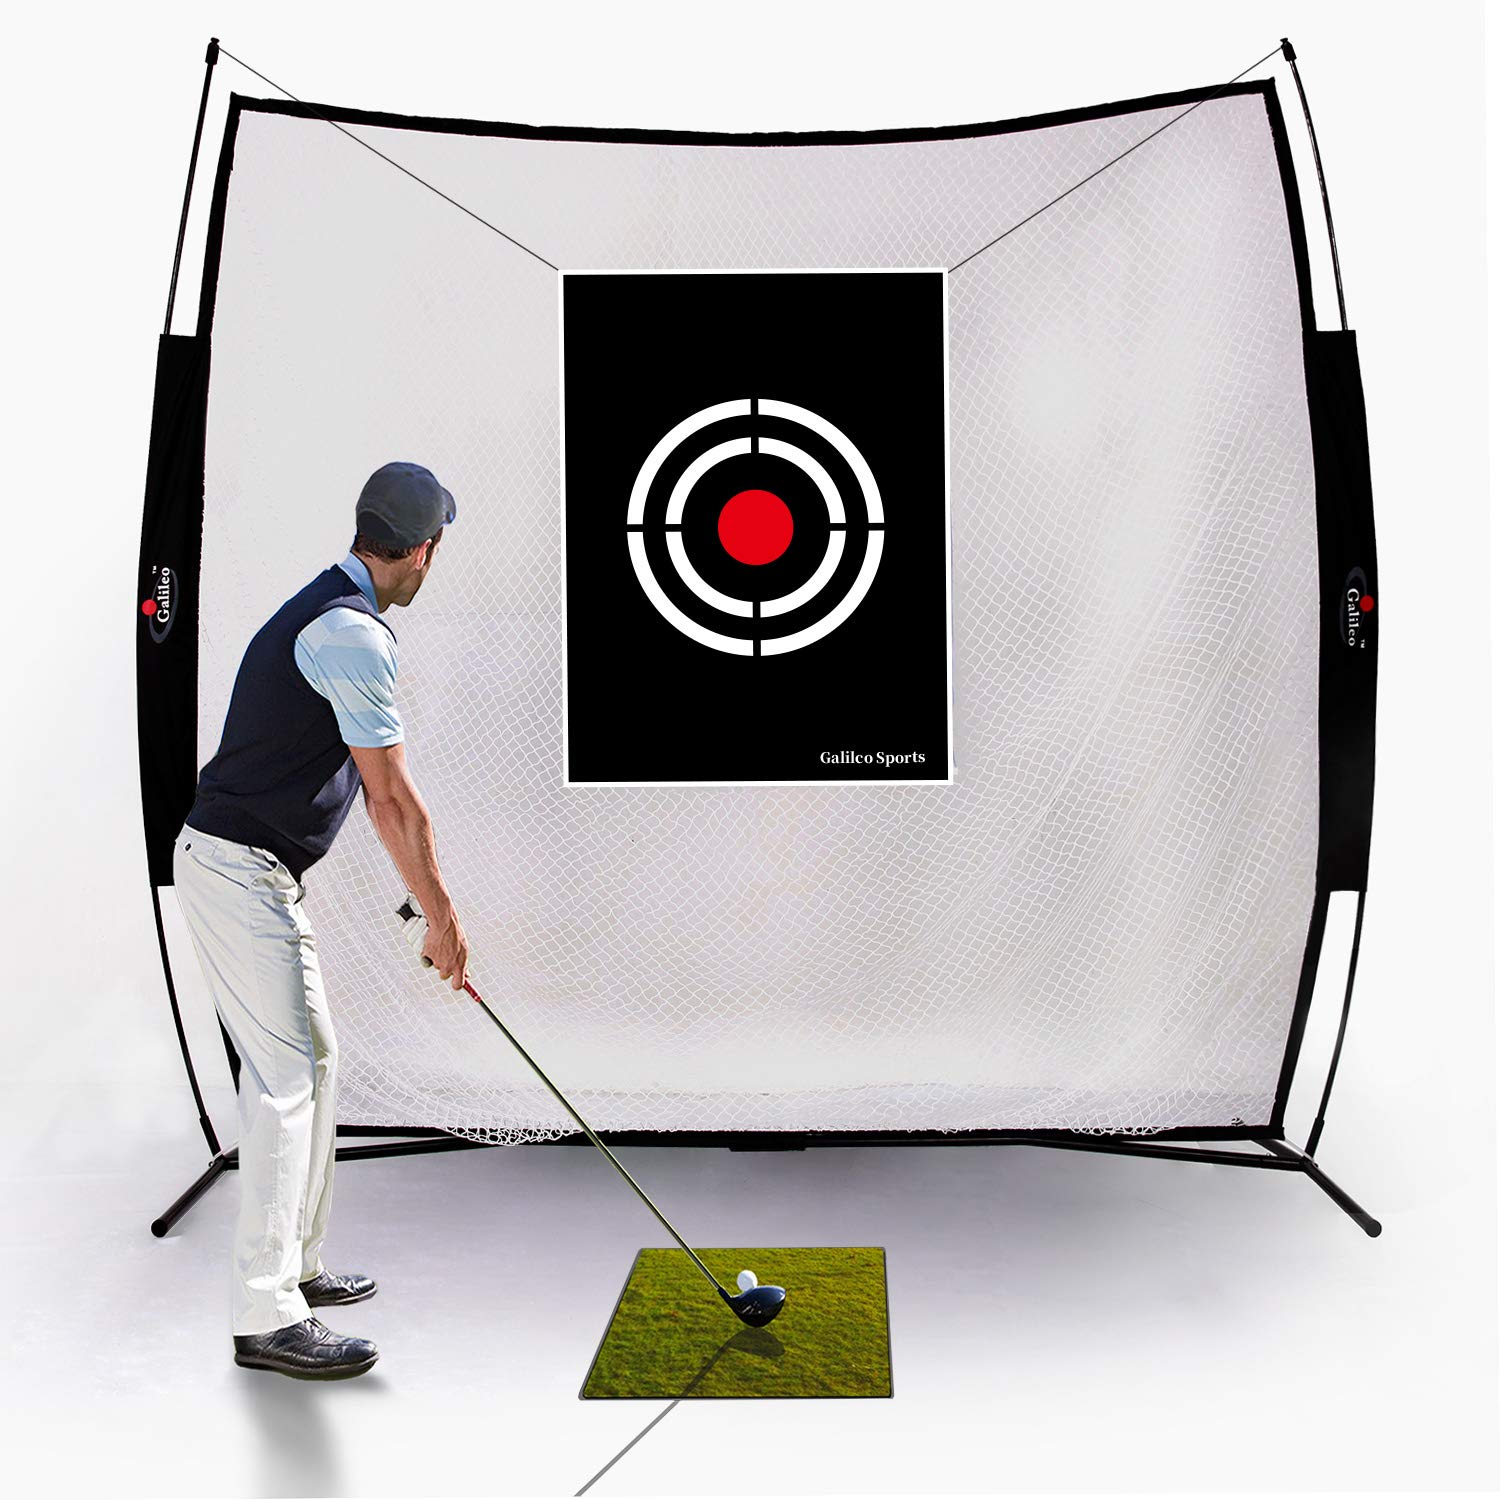 Galileo Golf Practice Net Golf Hitting Nets Driving Range Indoor&Outdoor Golf Training Aids with Target&Carry Bag(7x7ft) by GALILEO